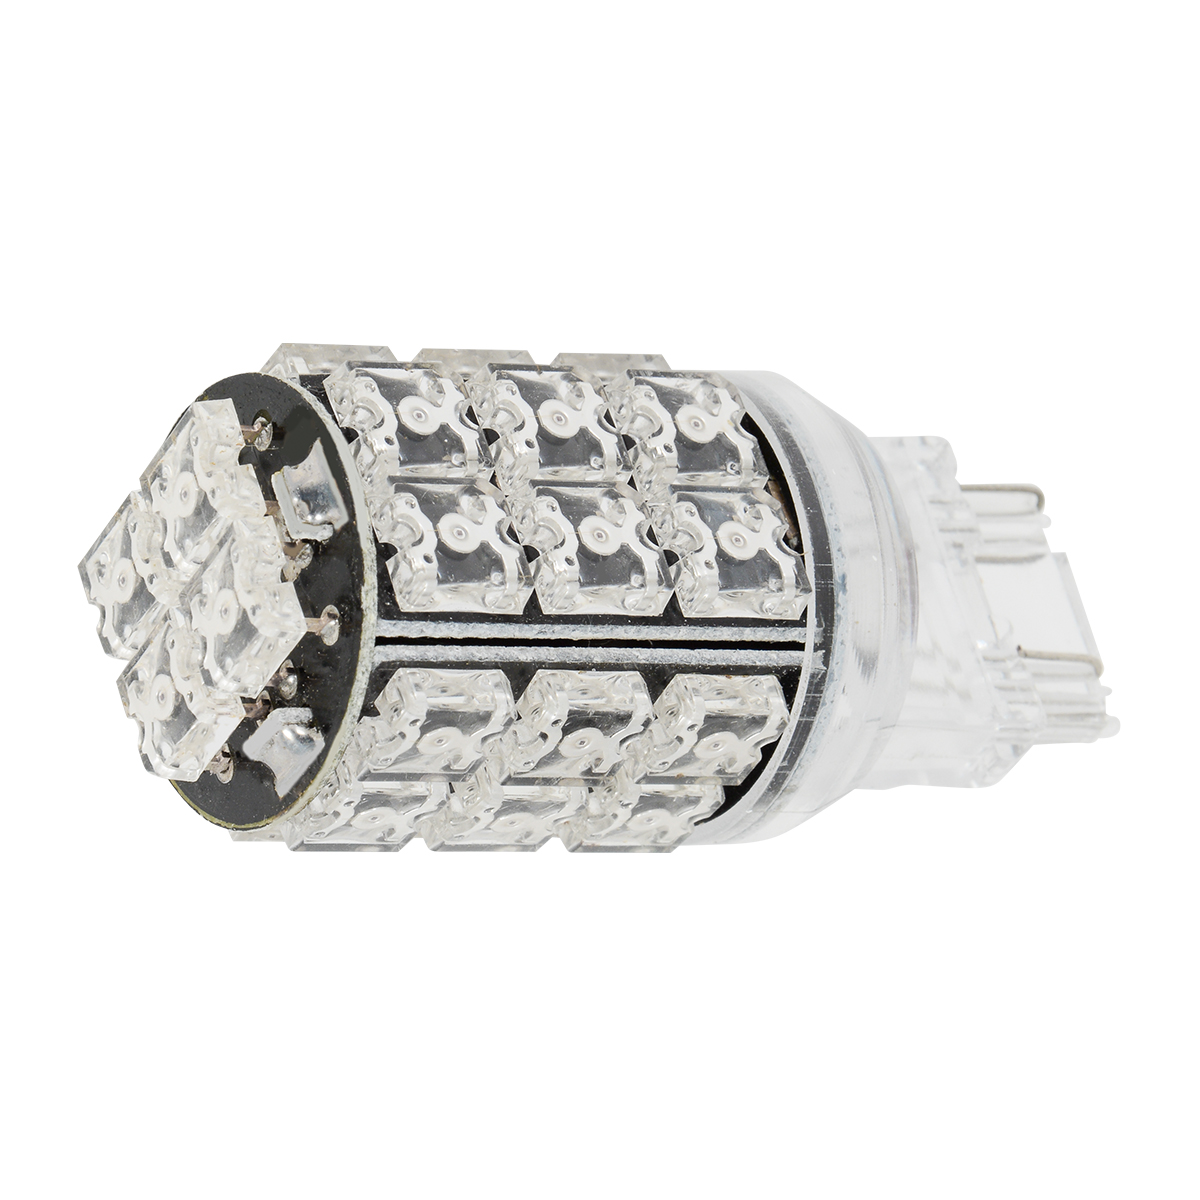 3157 Tower Style 28 LED Light Bulb